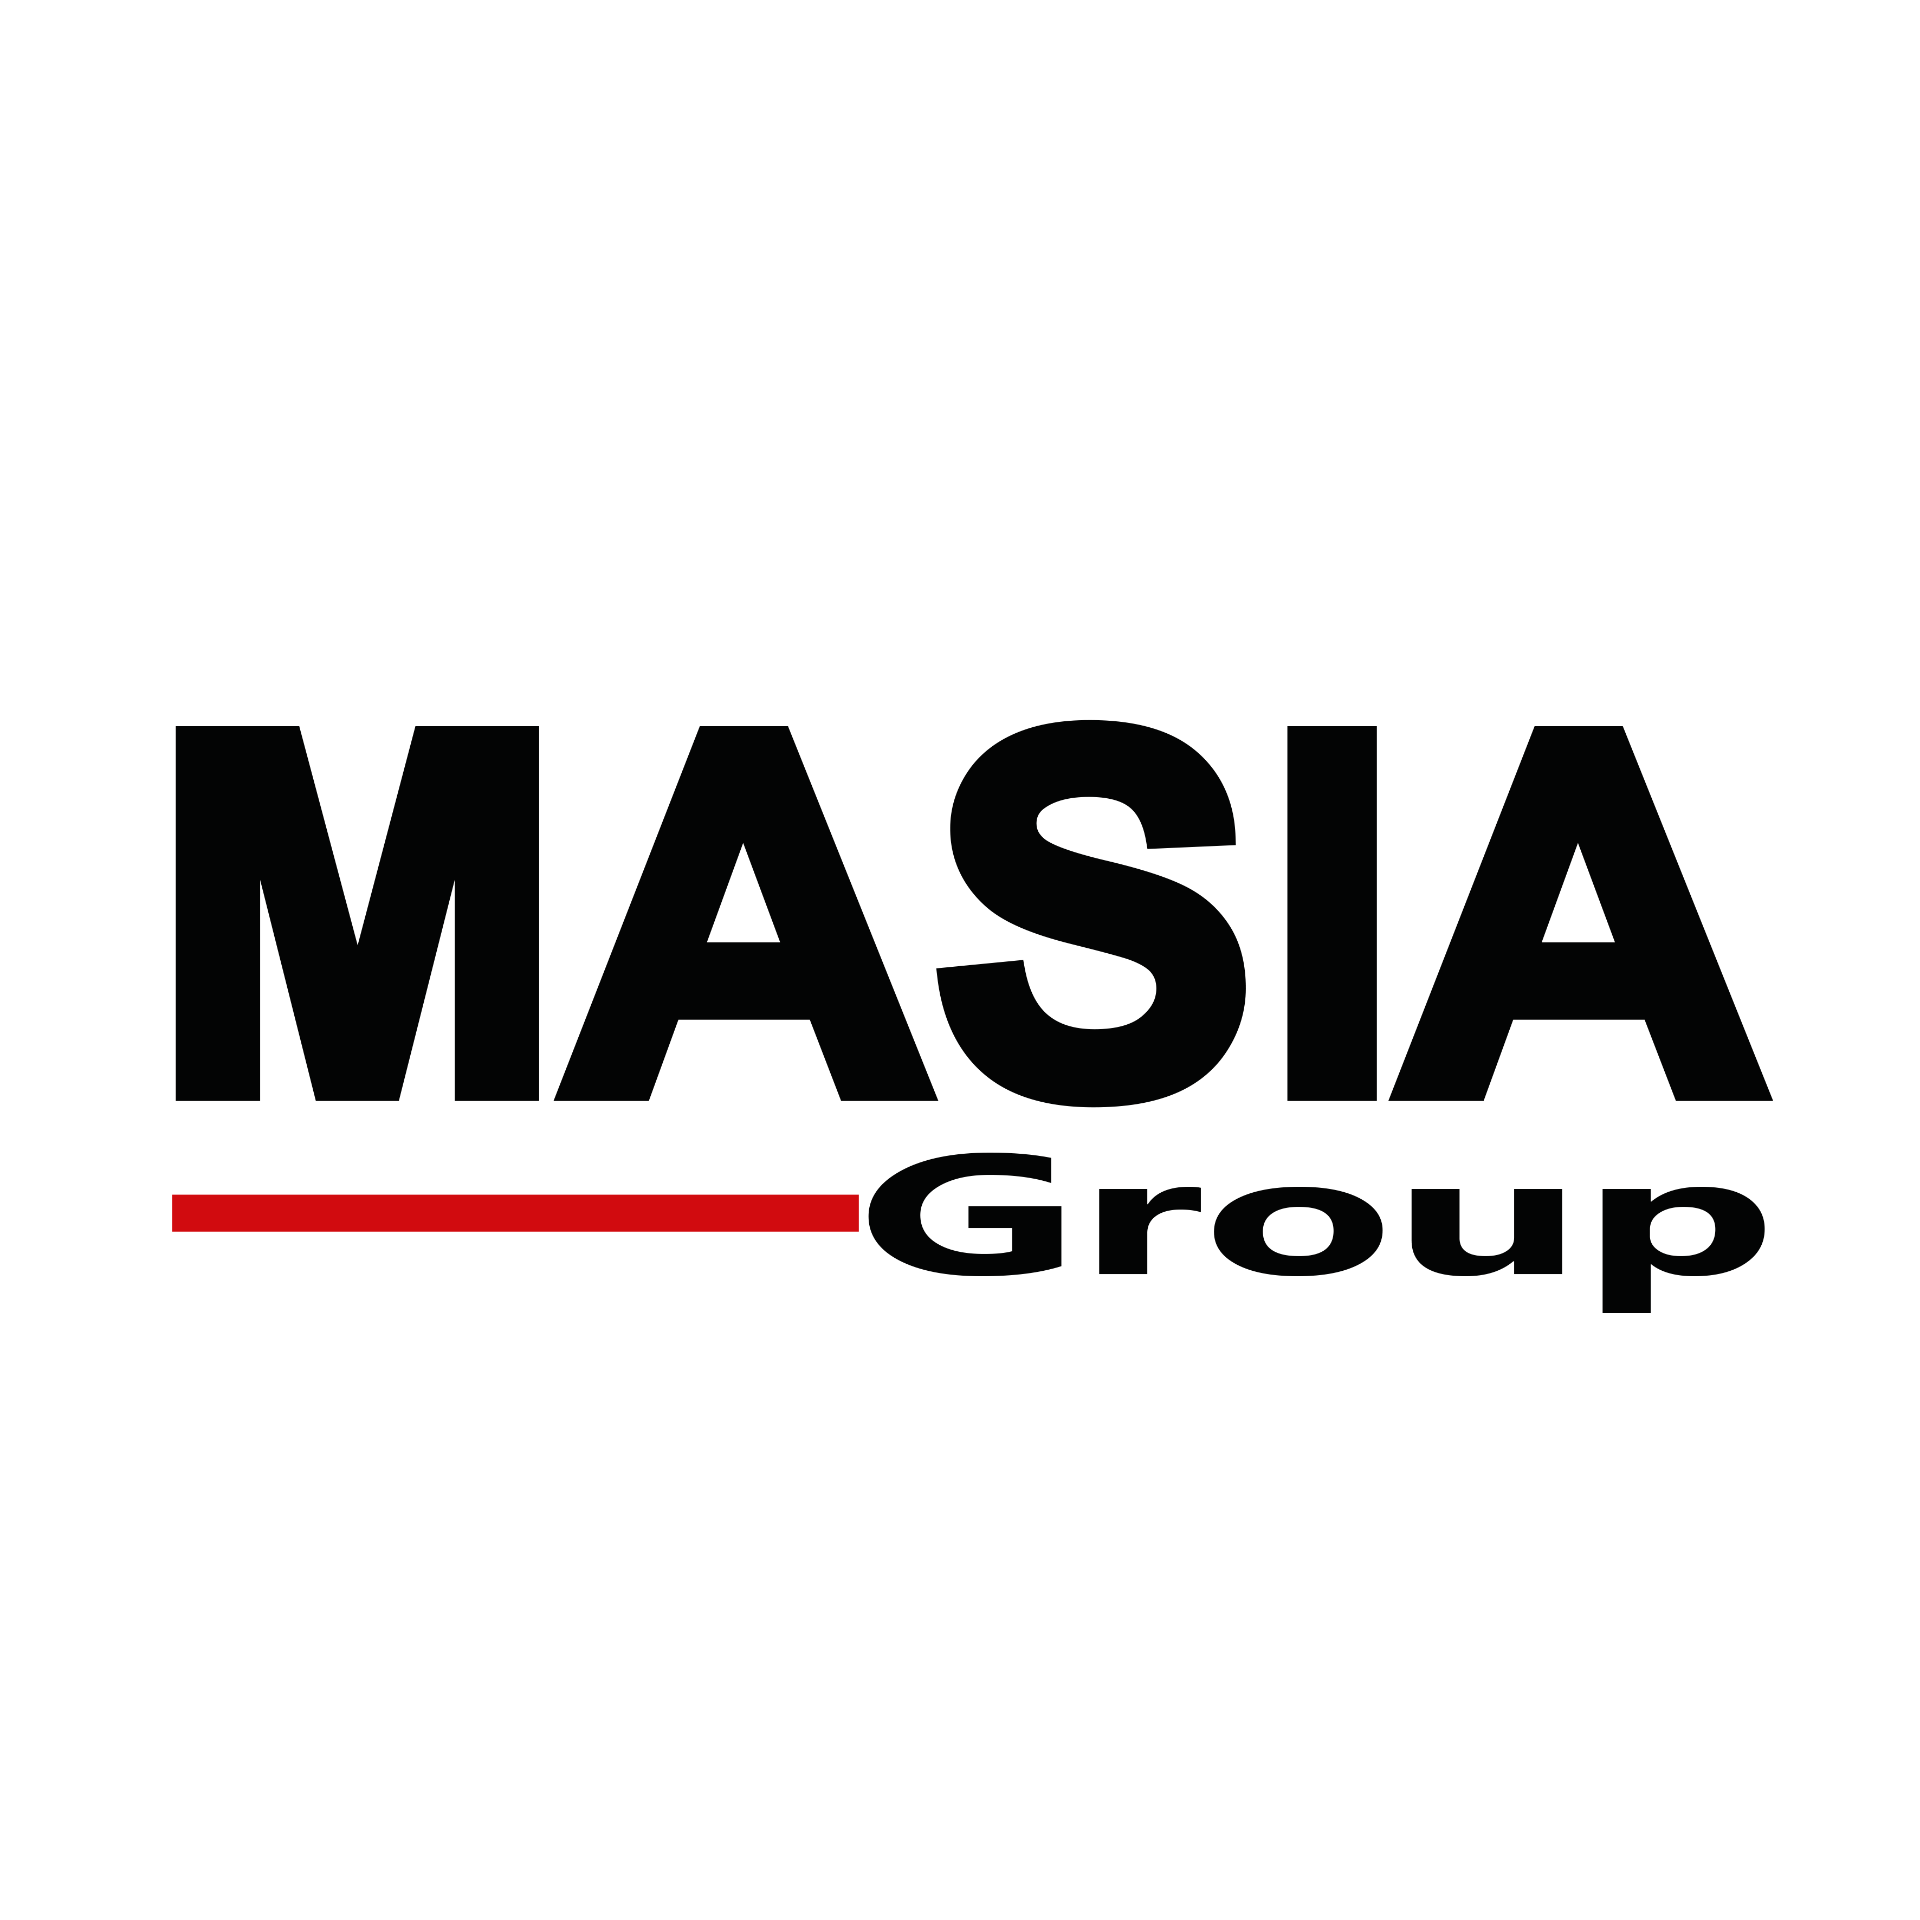 MASIA GROUP